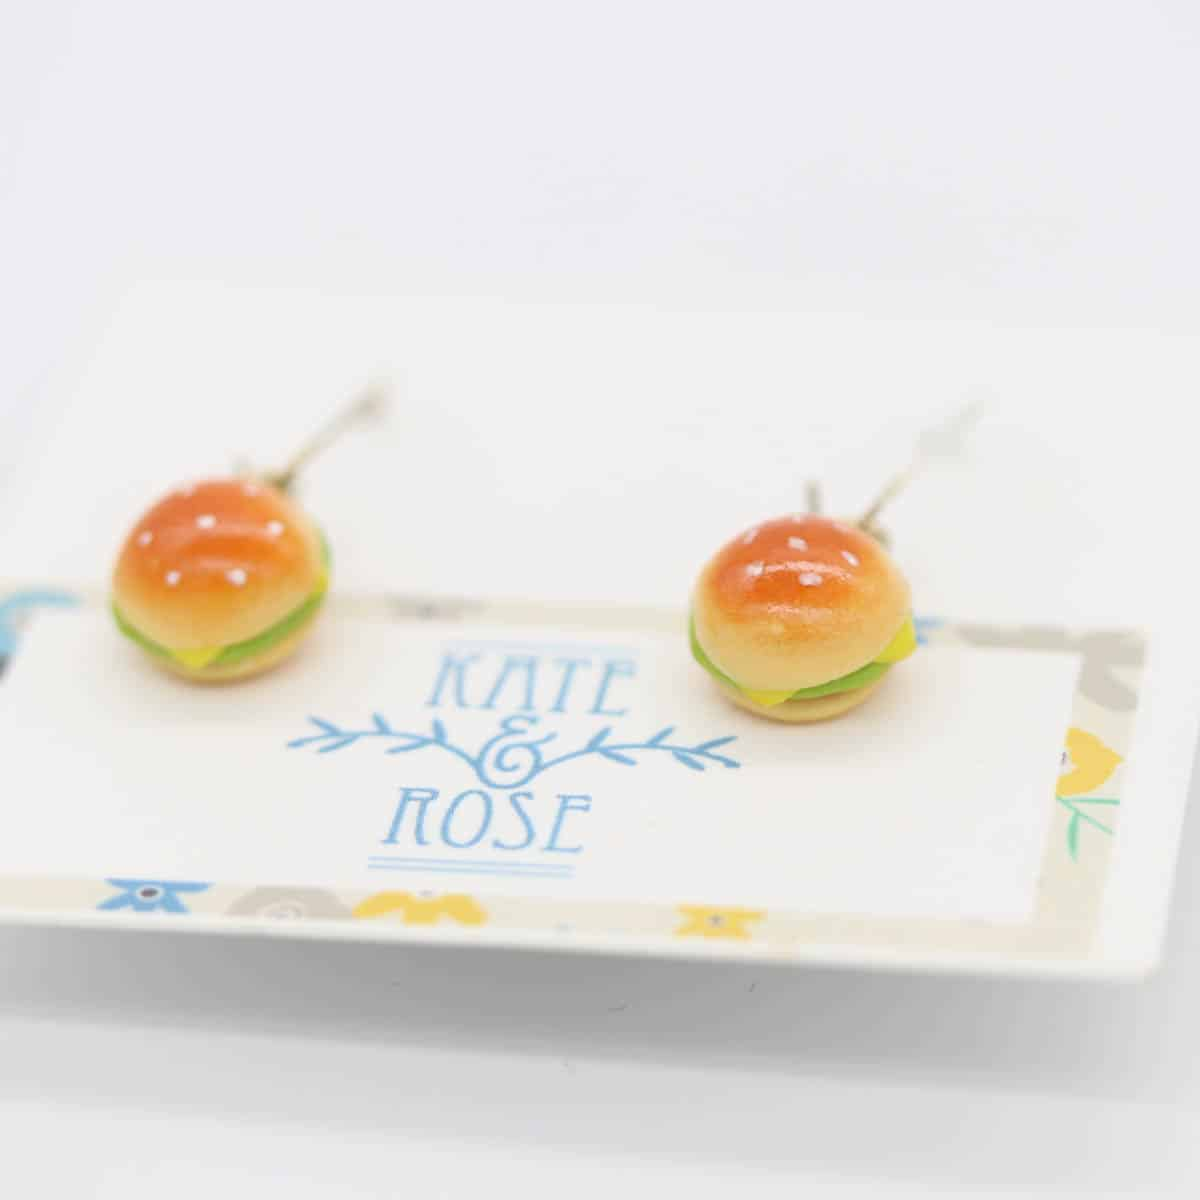 Burger Earrings  (drops) By Kate And Rose (Fitzroy) – $19.95